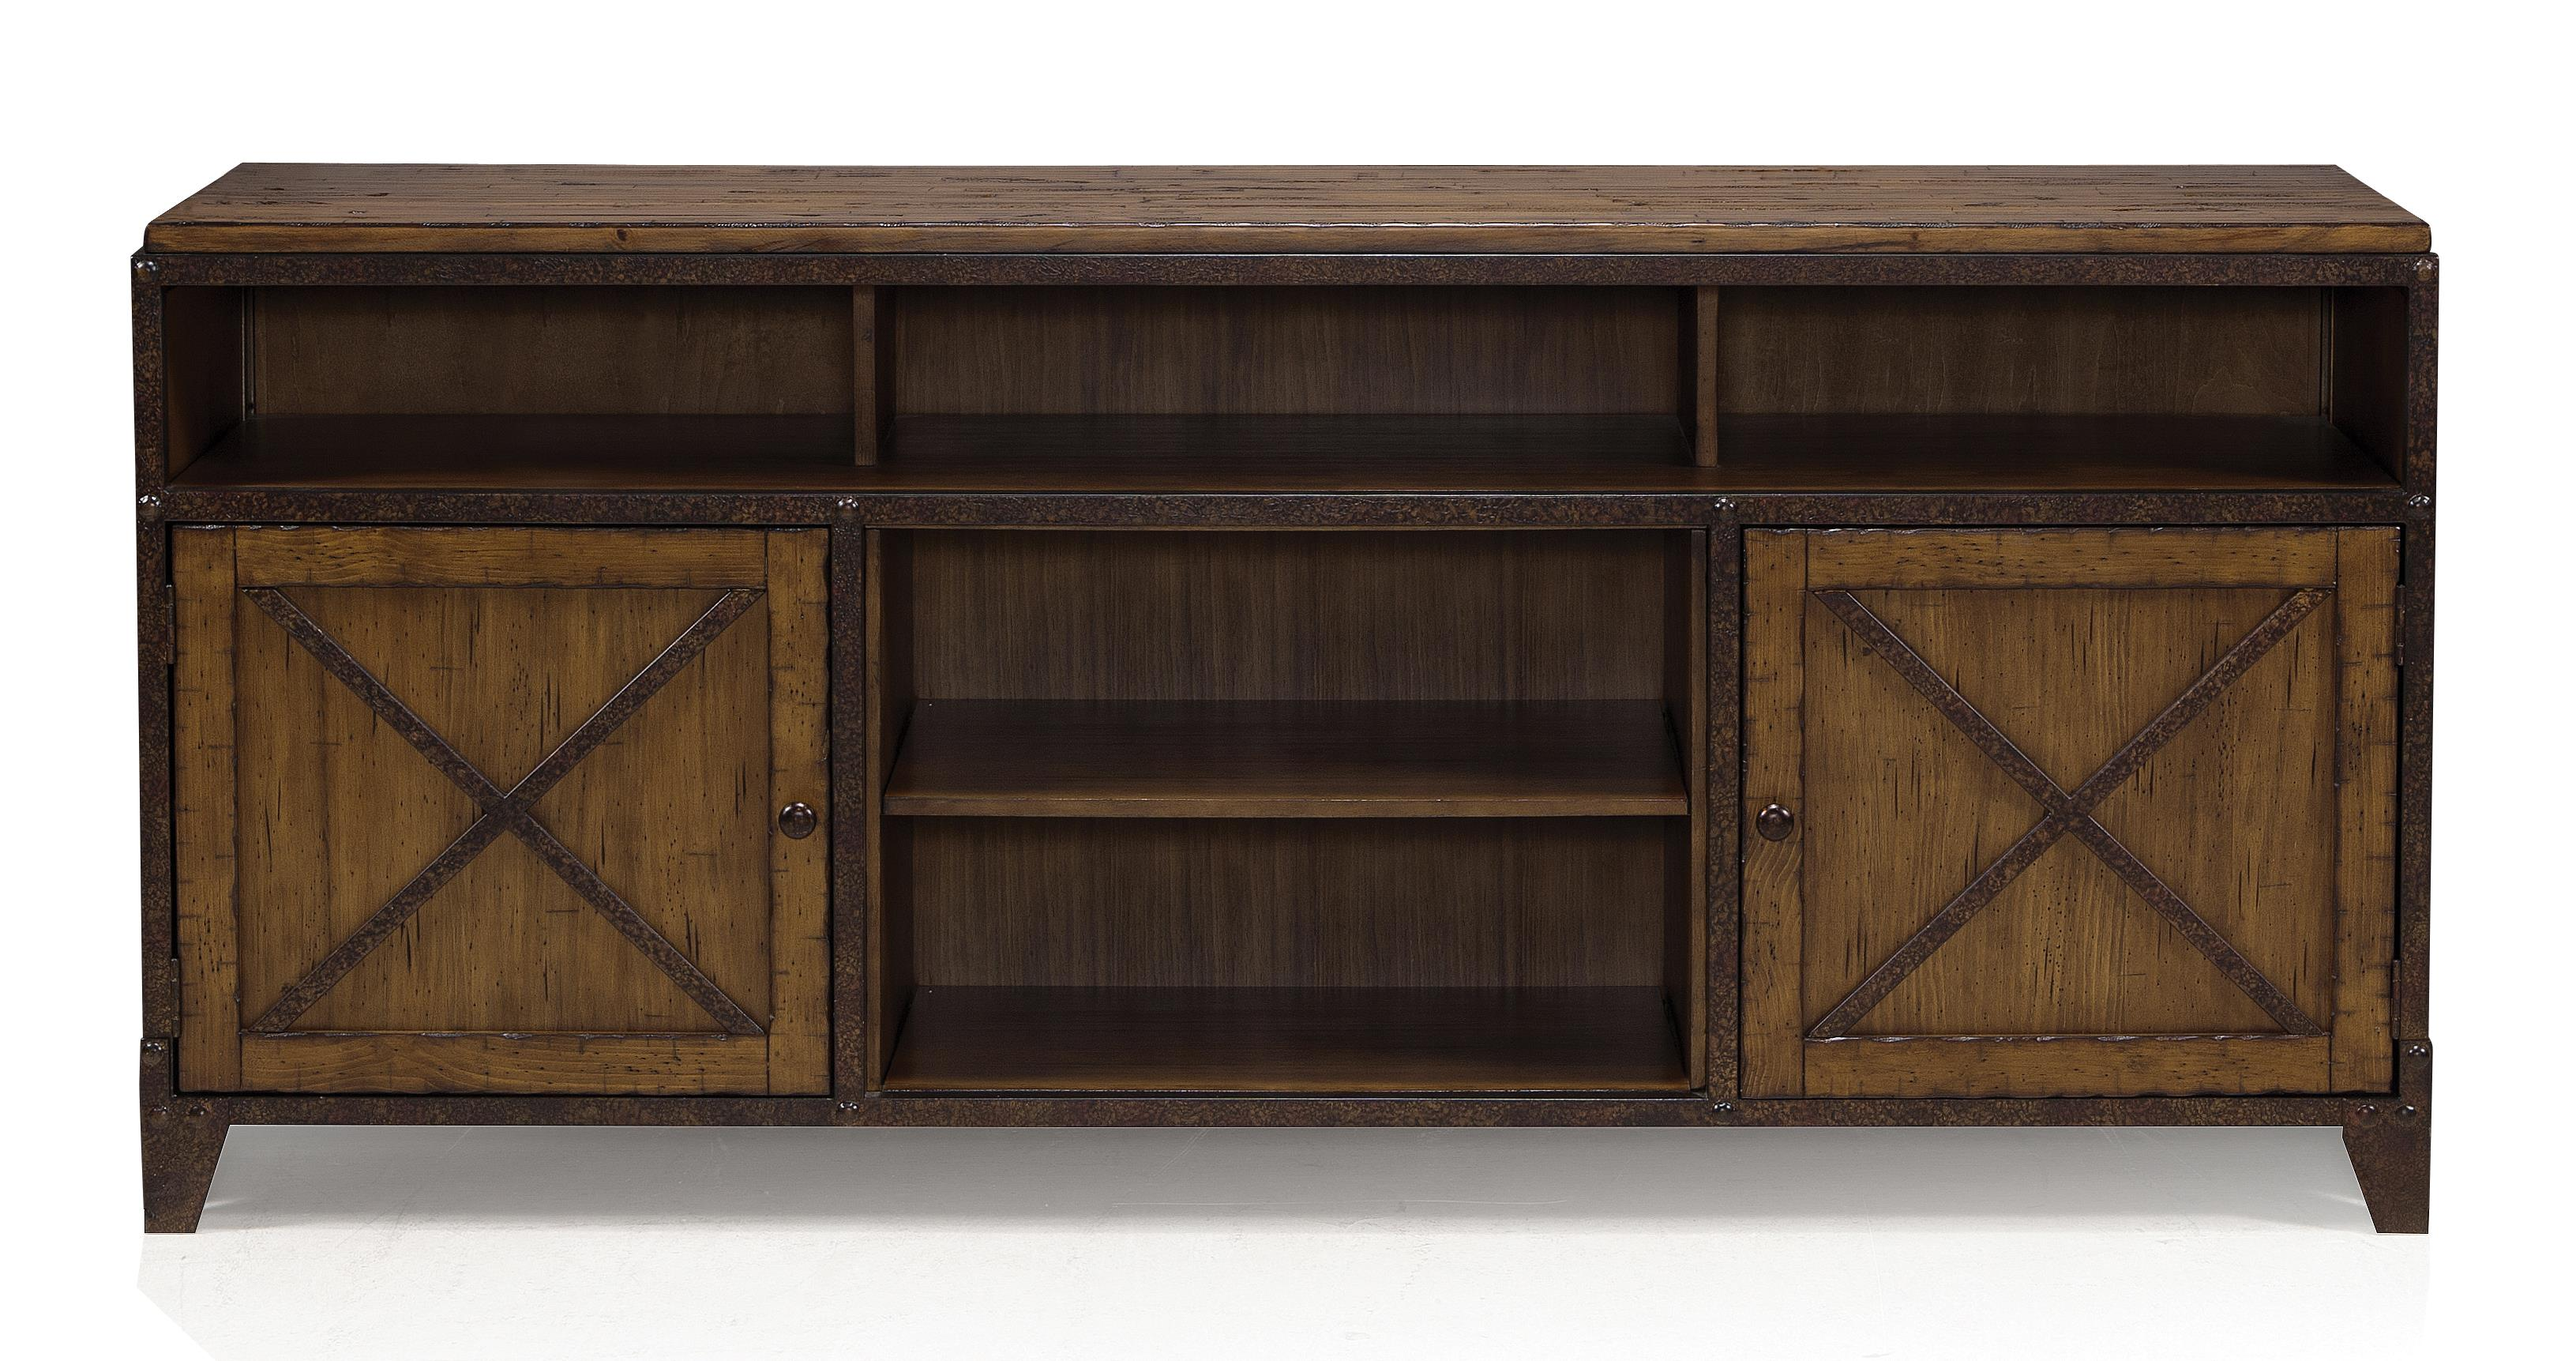 Magnussen Home Pinebrook Console - Item Number: E1755-05